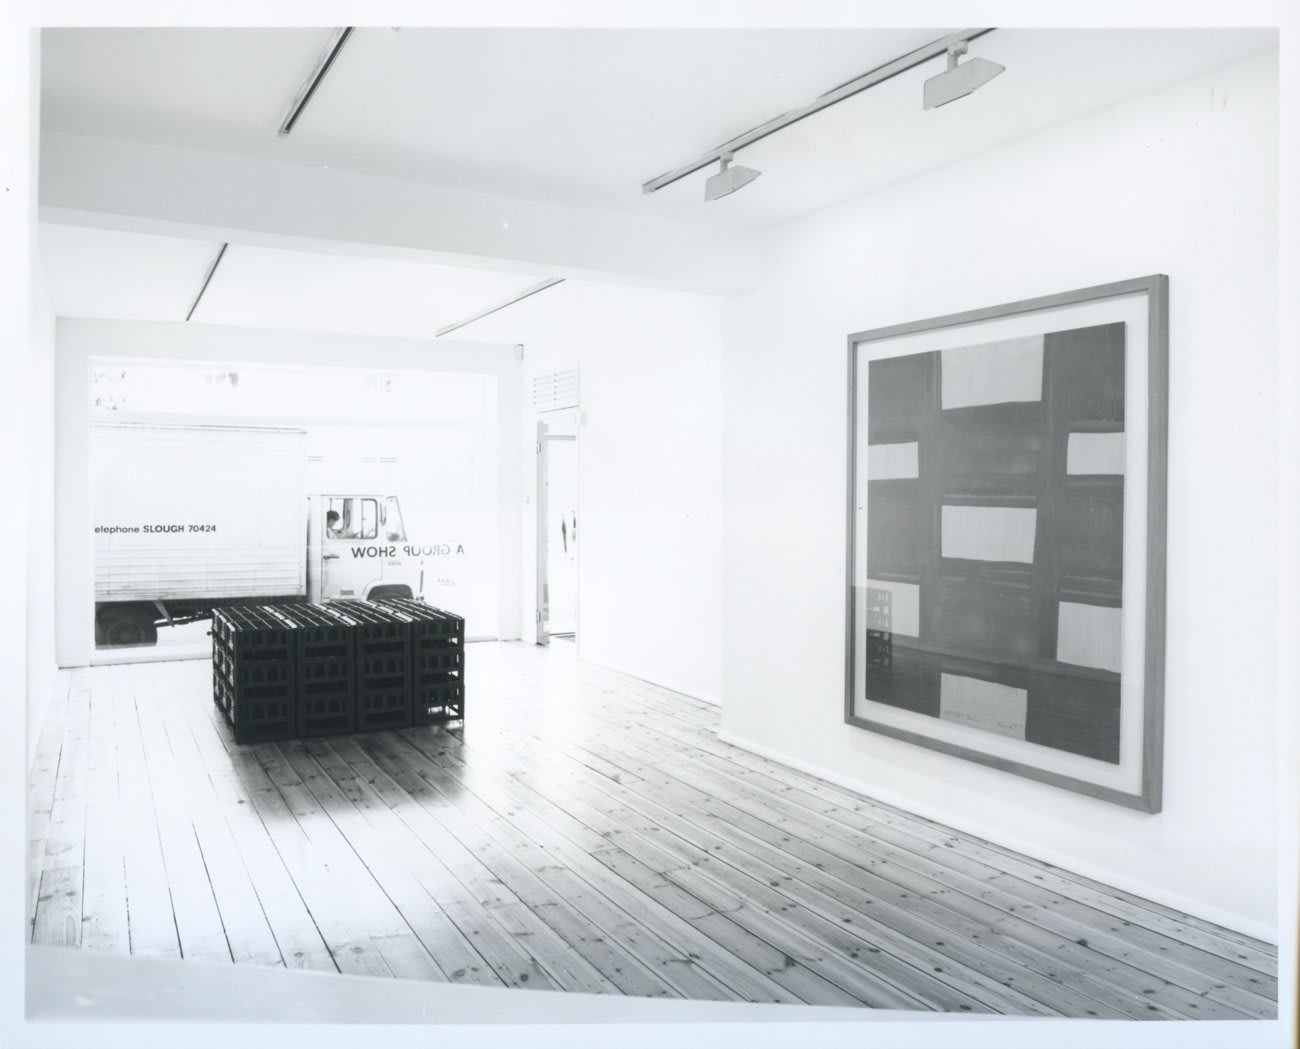 A Group Show, installation view, August 1990